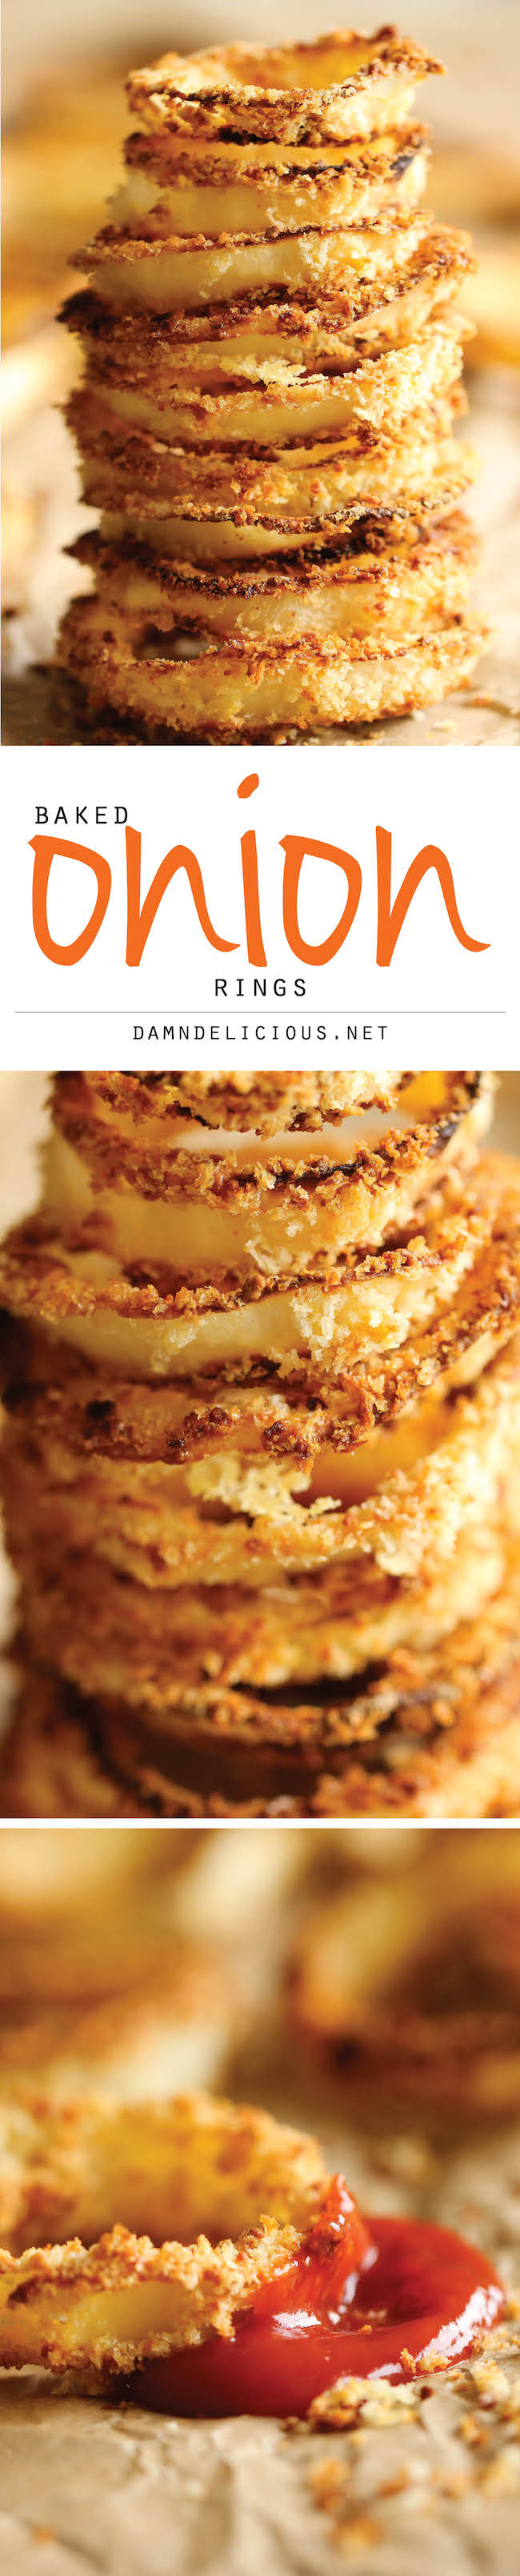 Baked Onion Rings - No need to deal with hot oil - these onion rings ...